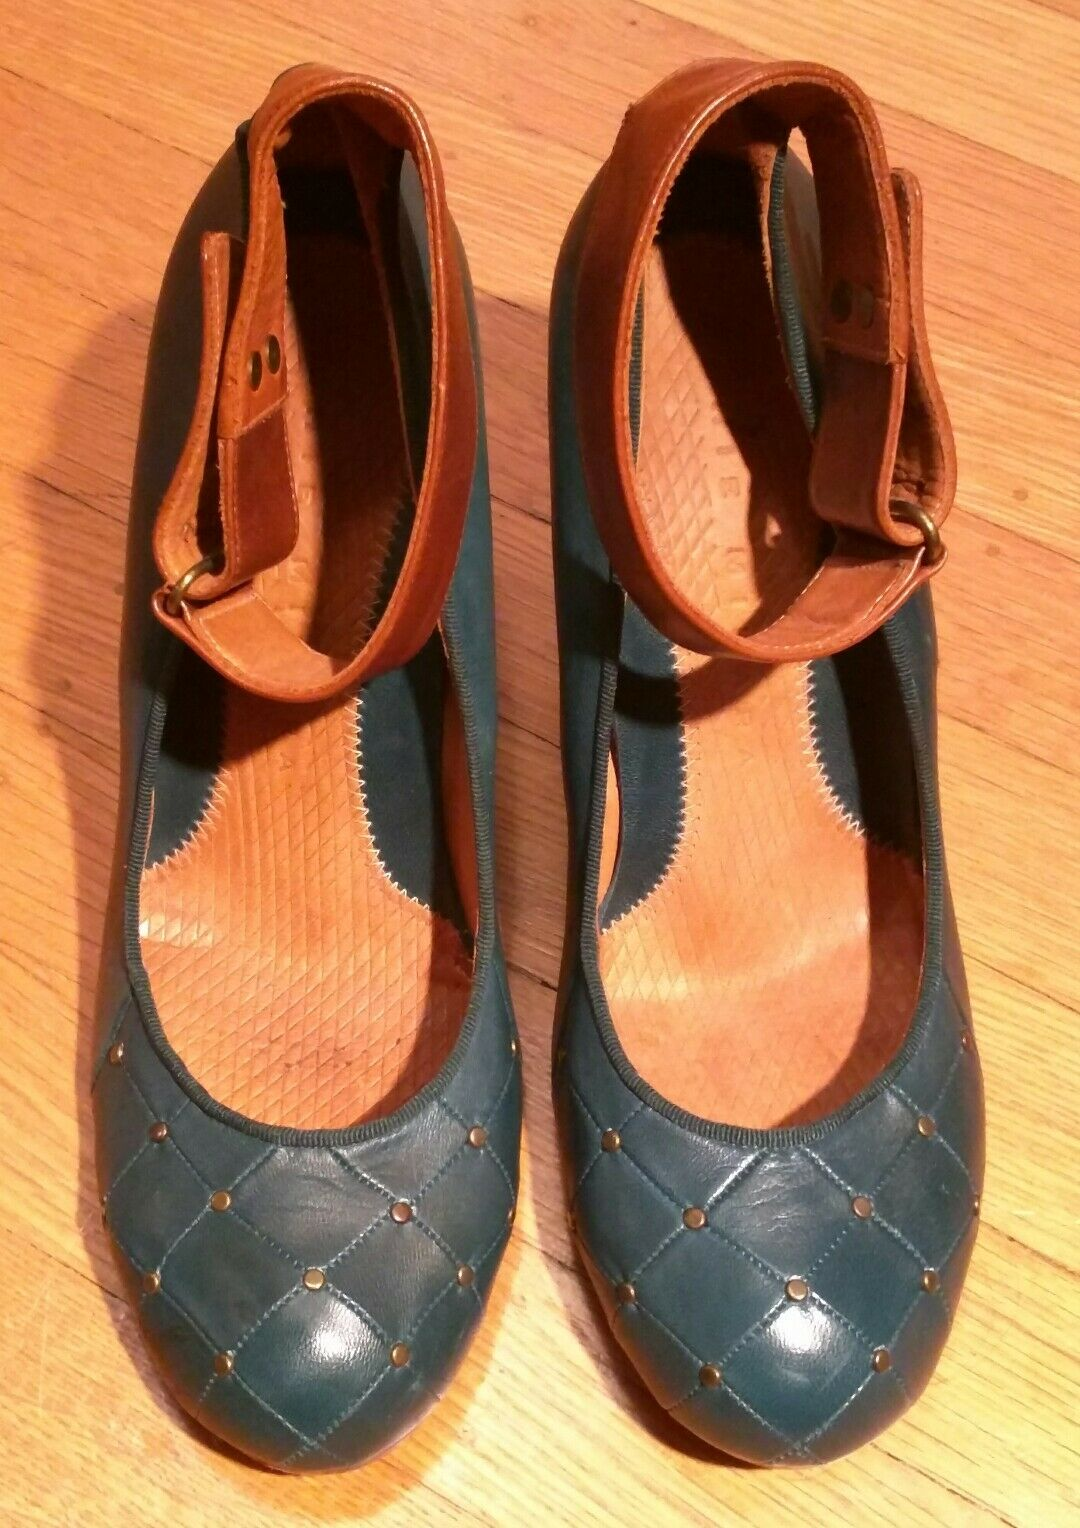 CHIE TEAL MIHARA ANTHROPOLOGIE TEAL CHIE STUDDED LEATHER ANKLE STRAP PUMPS 41 SHOES HEELS 6805b7